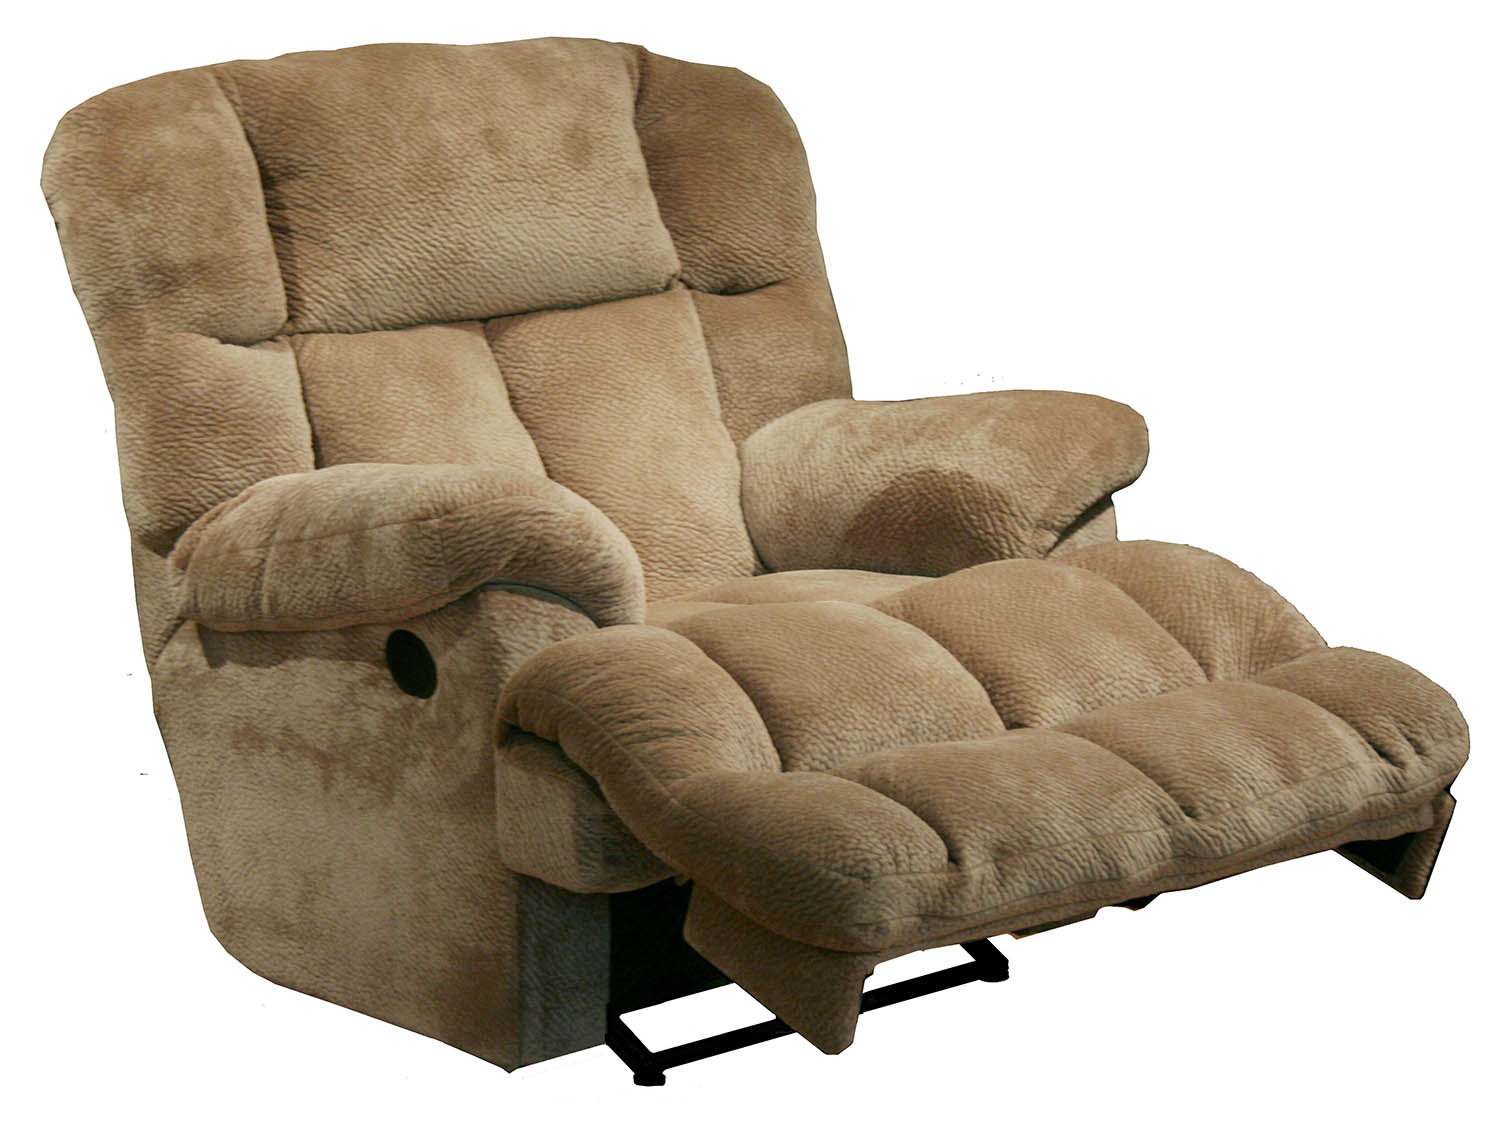 lay flat recliner chairs mid century kitchen table and catnapper cloud 12 6541 7 power chaise chair camel fabric walmart com